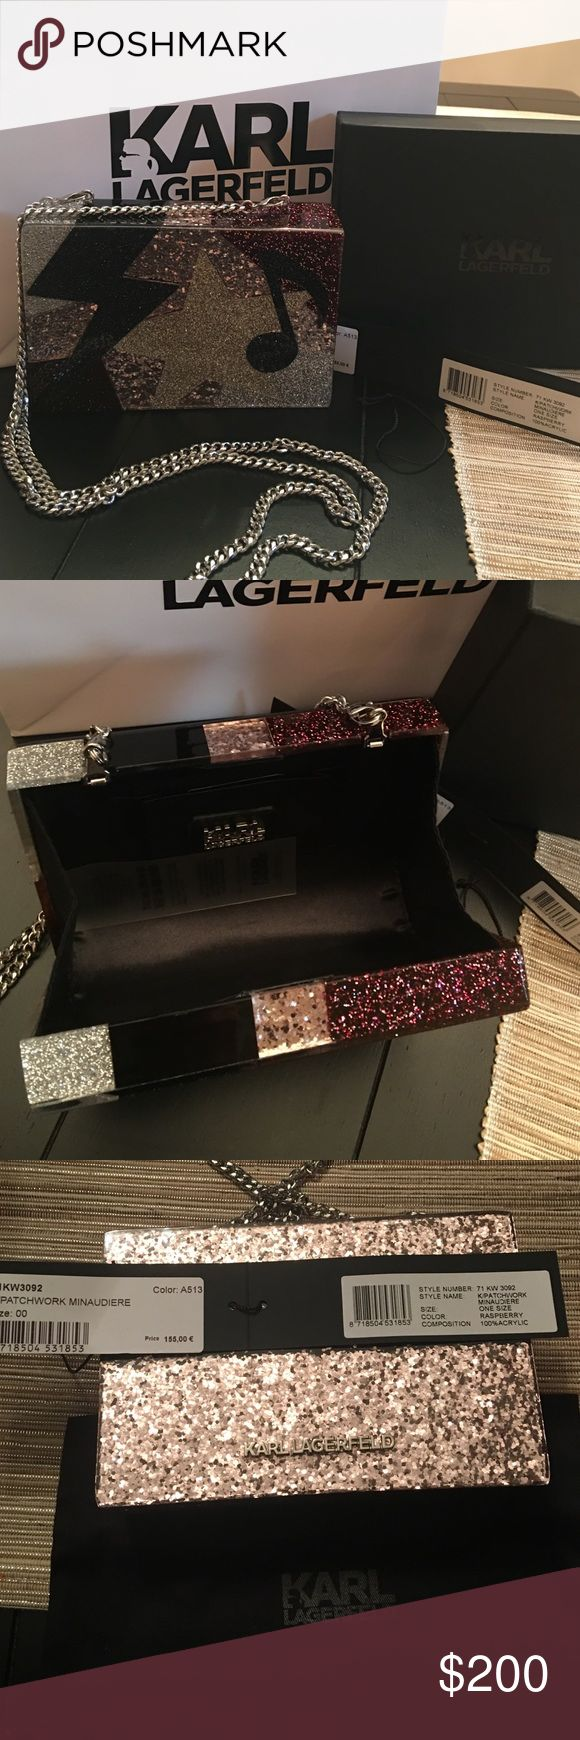 Exclusive Auth Karl Lagerfeld clutch Auth Karl Lagerfeld clutch bought in Paris - clutch is not sold in the US. Brand New. Comes with tags, Karl Lagerfeld pouch - all original packaging. Karl Lagerfeld Bags Clutches & Wristlets